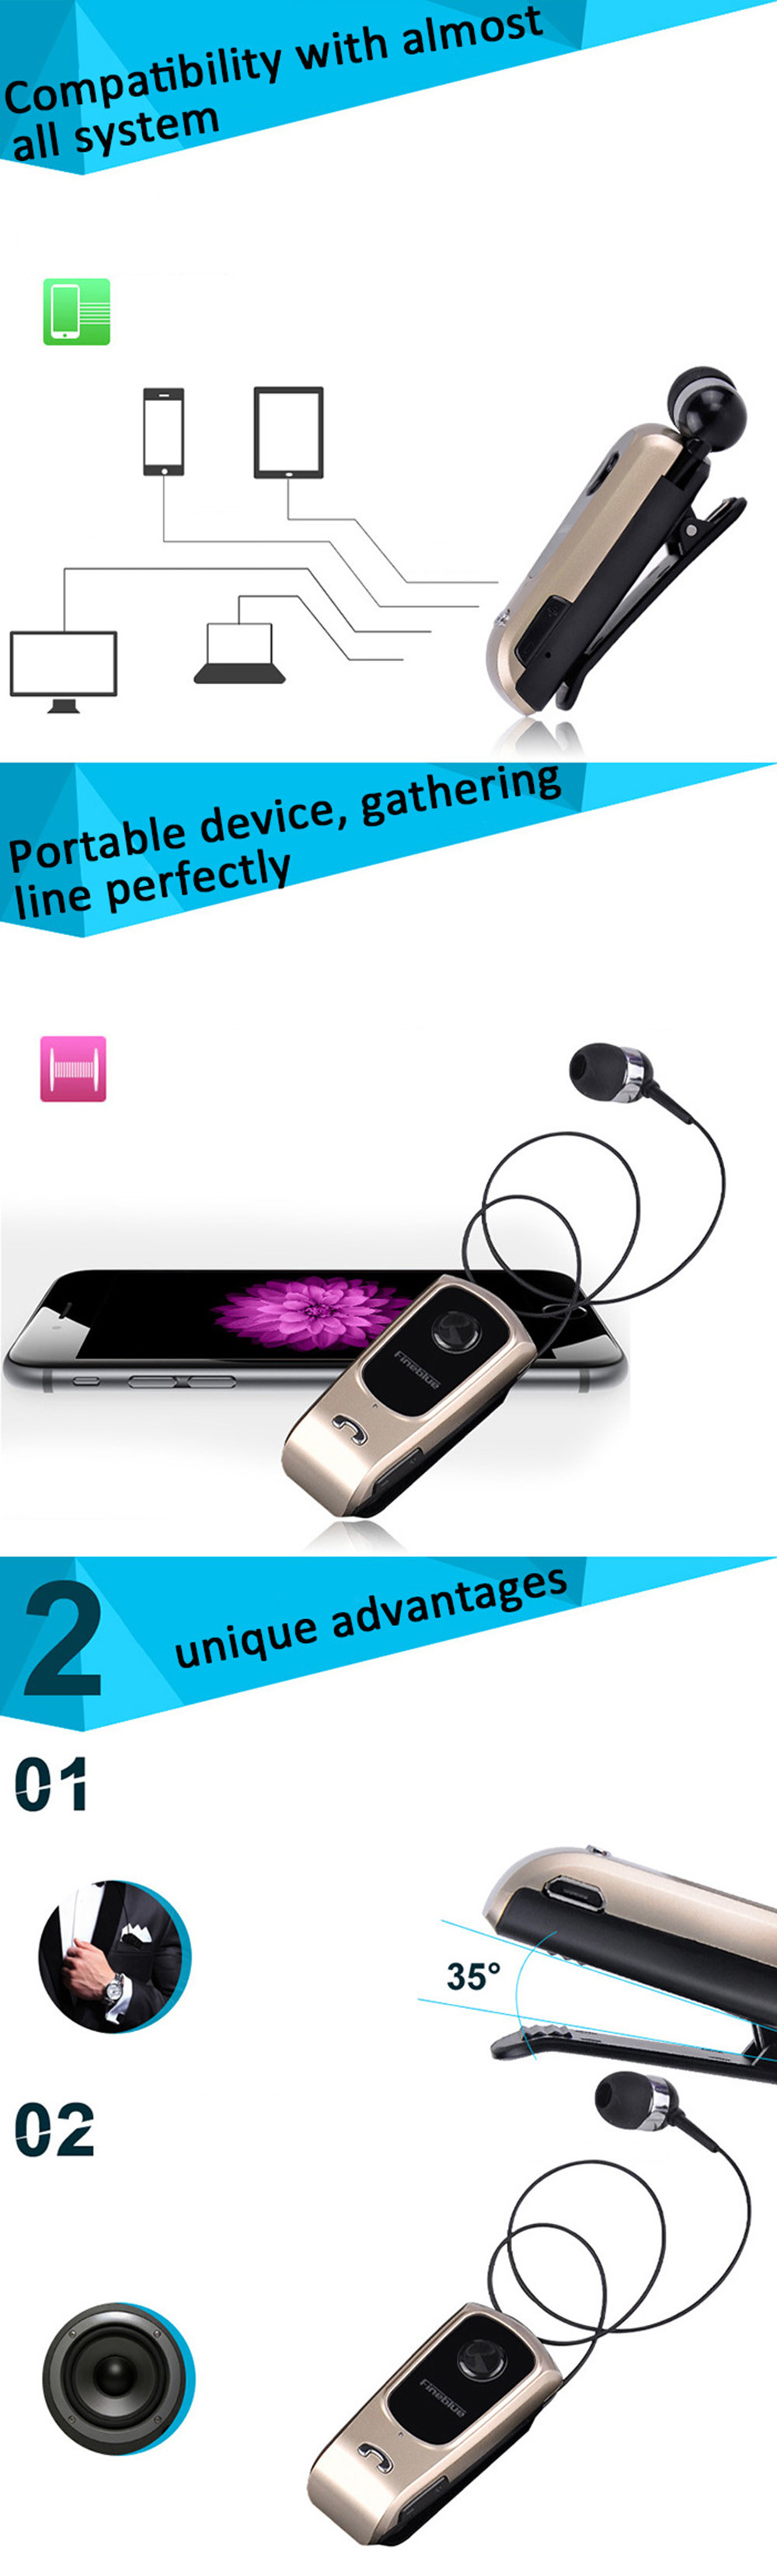 FINEBLUE F920 Wireless Bluetooth V4.0 Headphone Calls Vibration Remind Wear Clip Headset- Silver